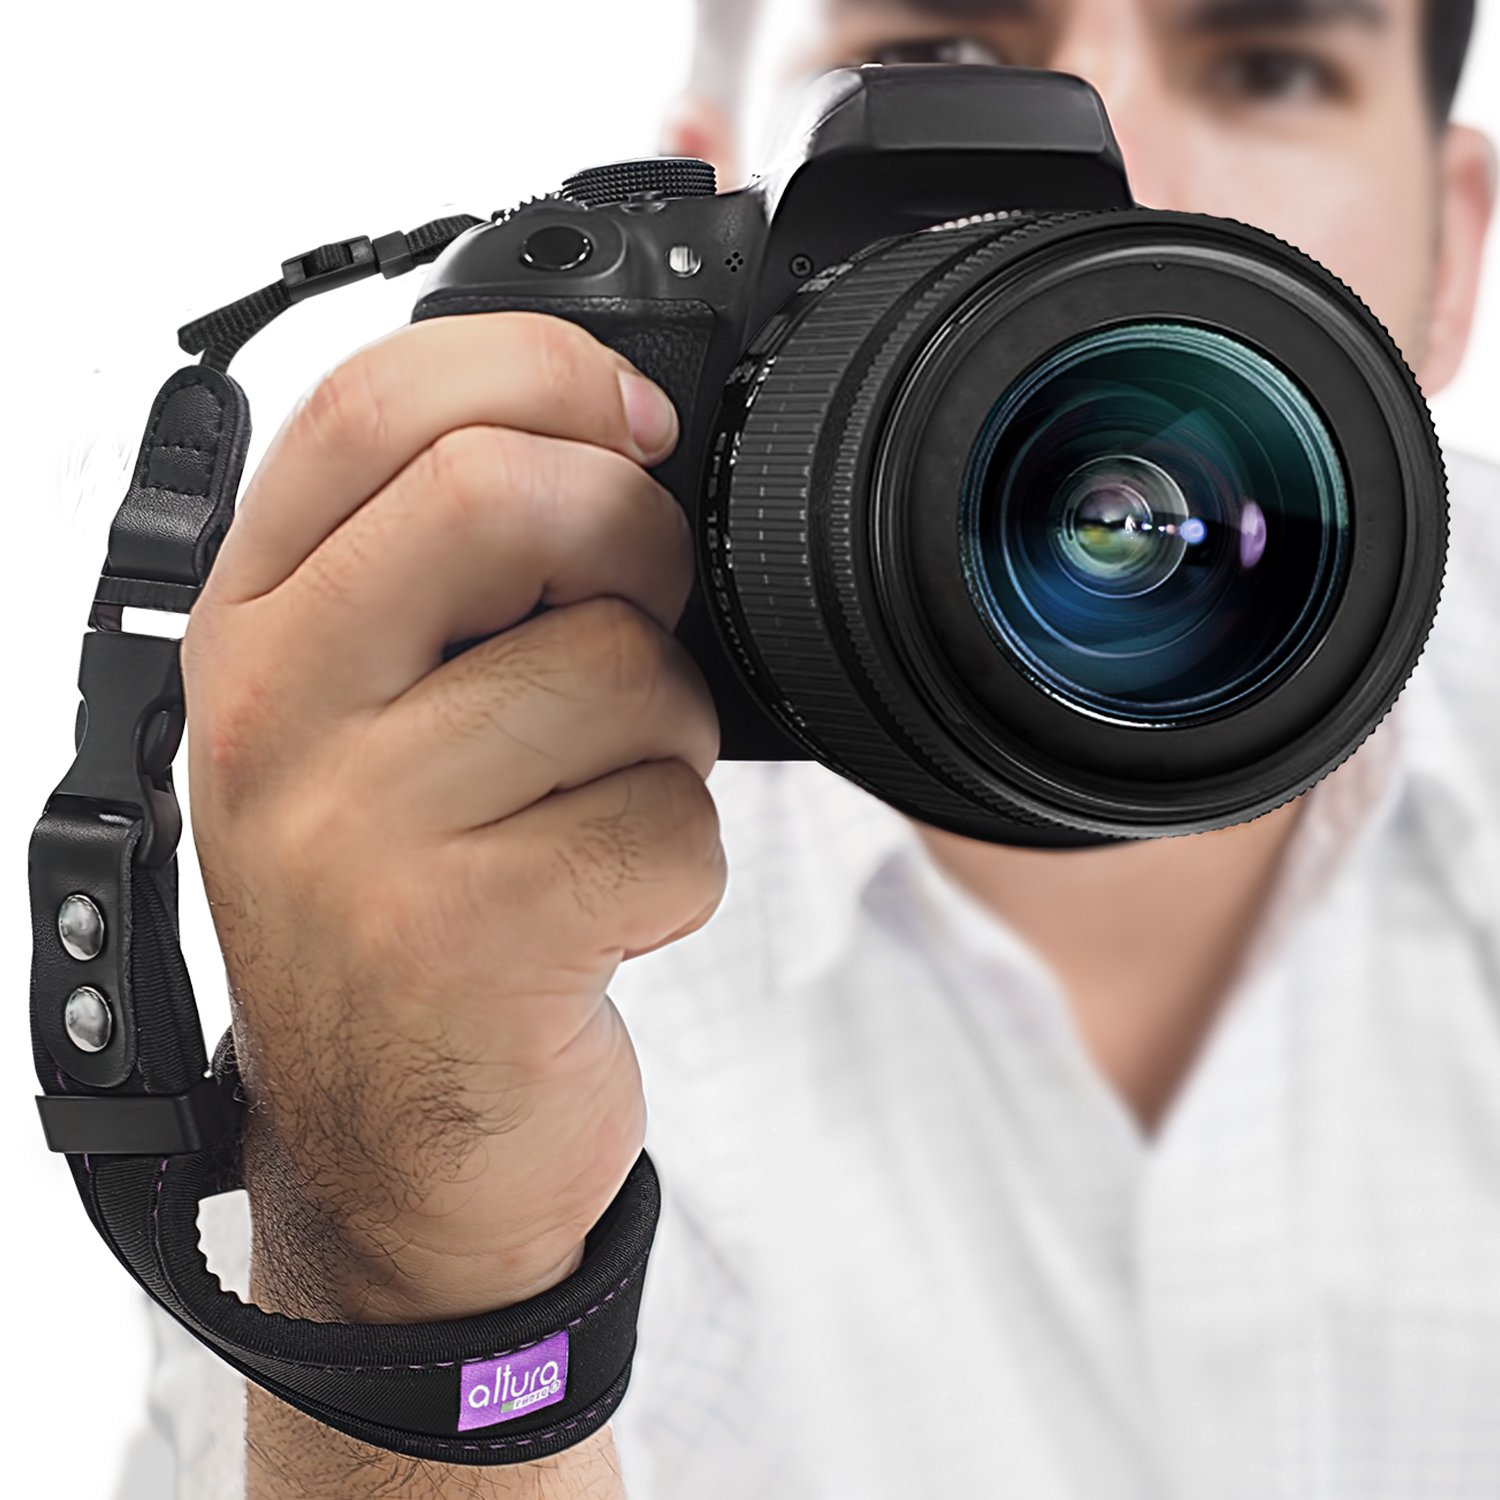 Top 20 Best Camera Hand Grip Wrist Straps 2019-2020 - cover